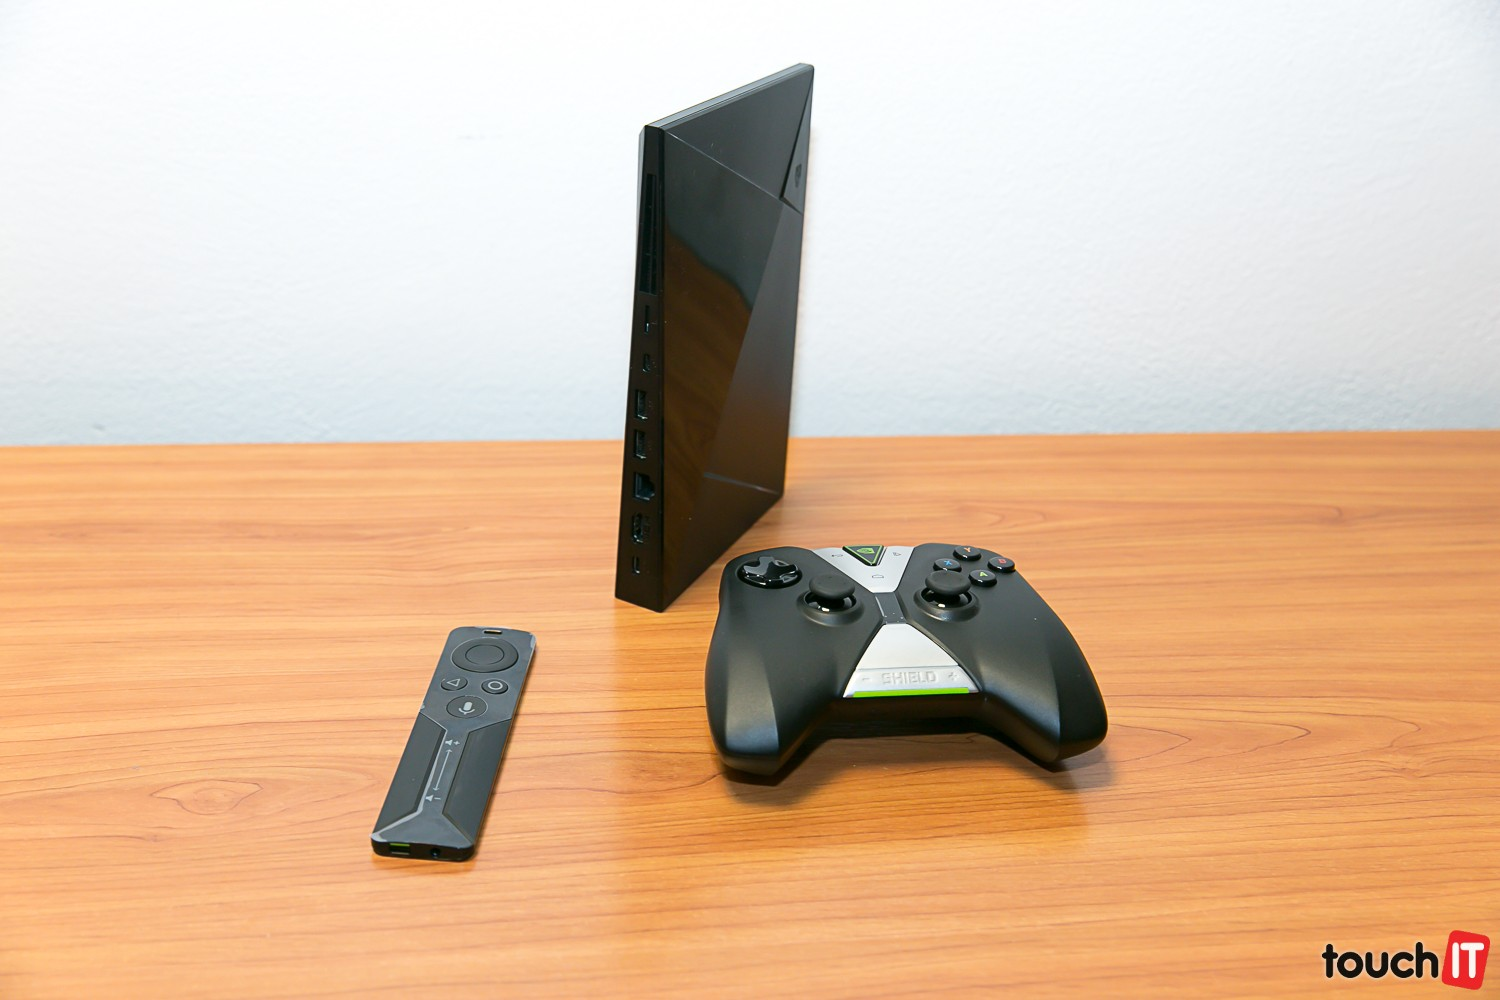 6622bde22 Test TOUCHIT: Druhý pohľad na NVIDIA SHIELD Android TV | TOUCHIT